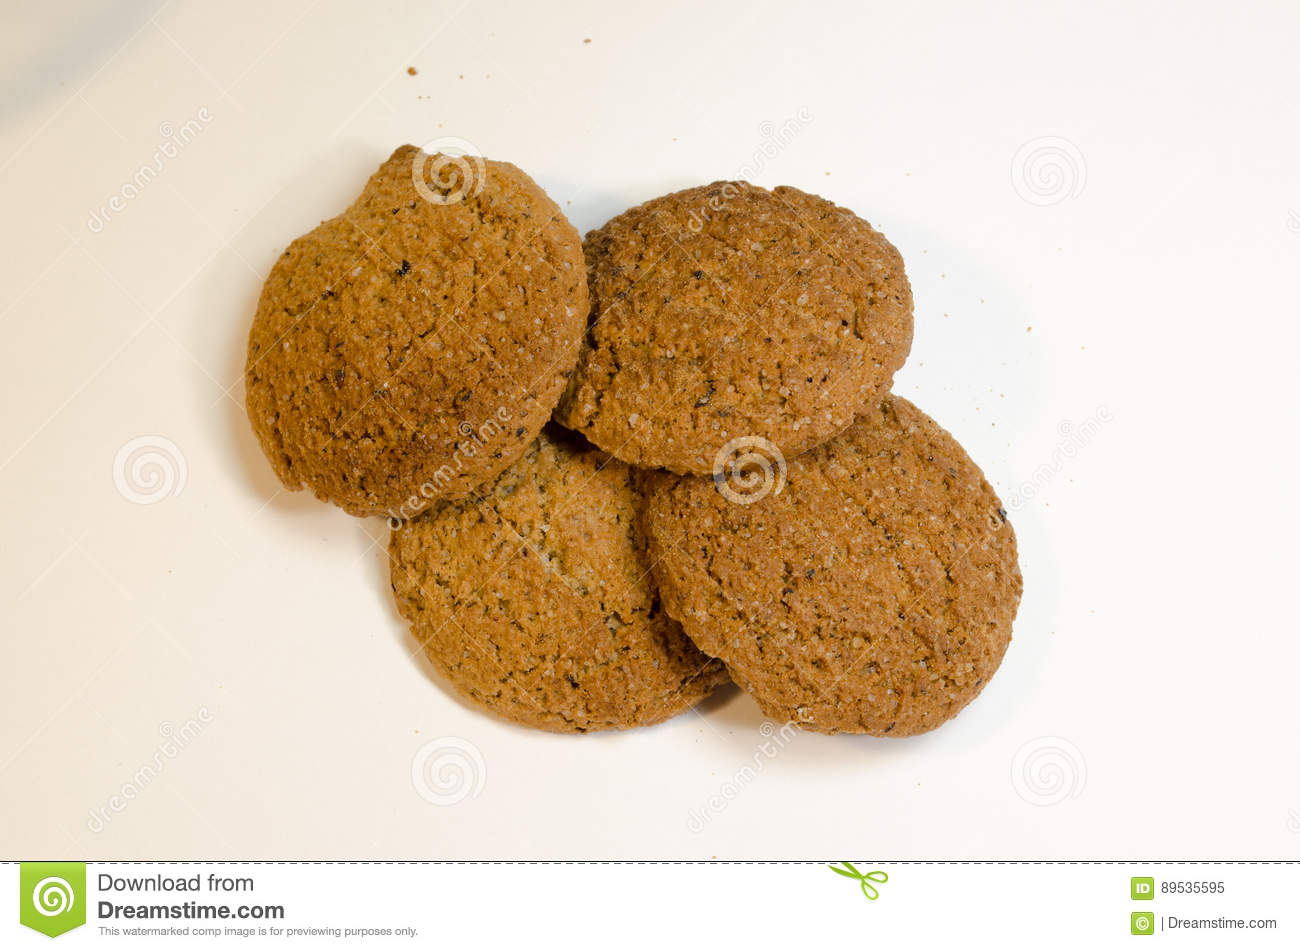 Oatmeal Cookies Stock Image  Image Of Homemade, View